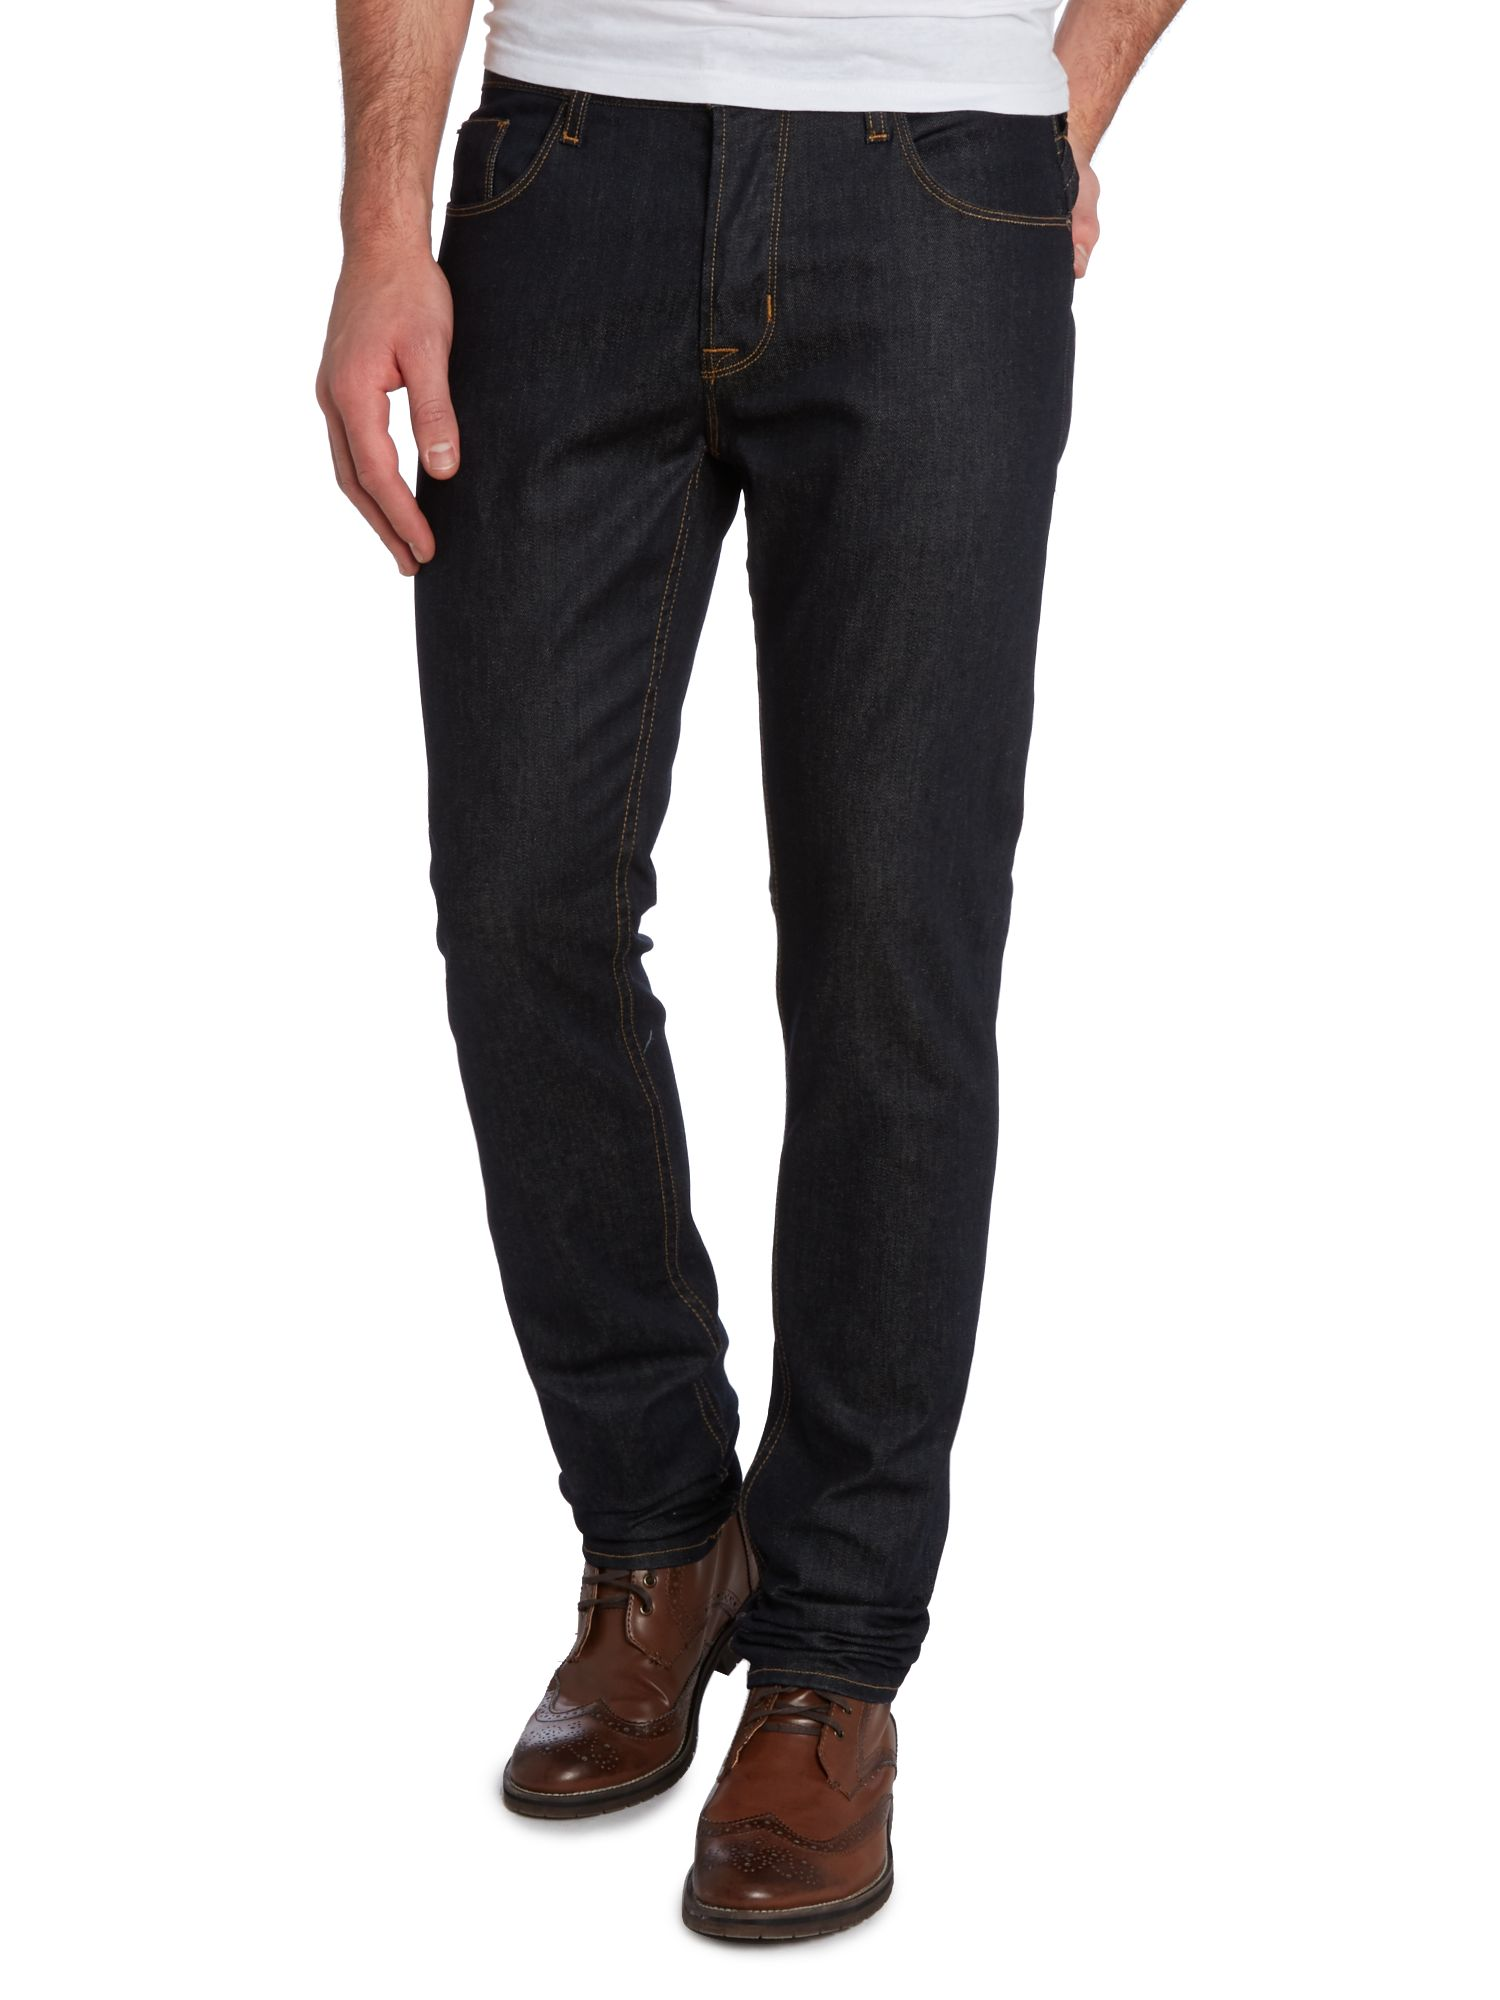 Sartour slim leg edges dark wash jeans